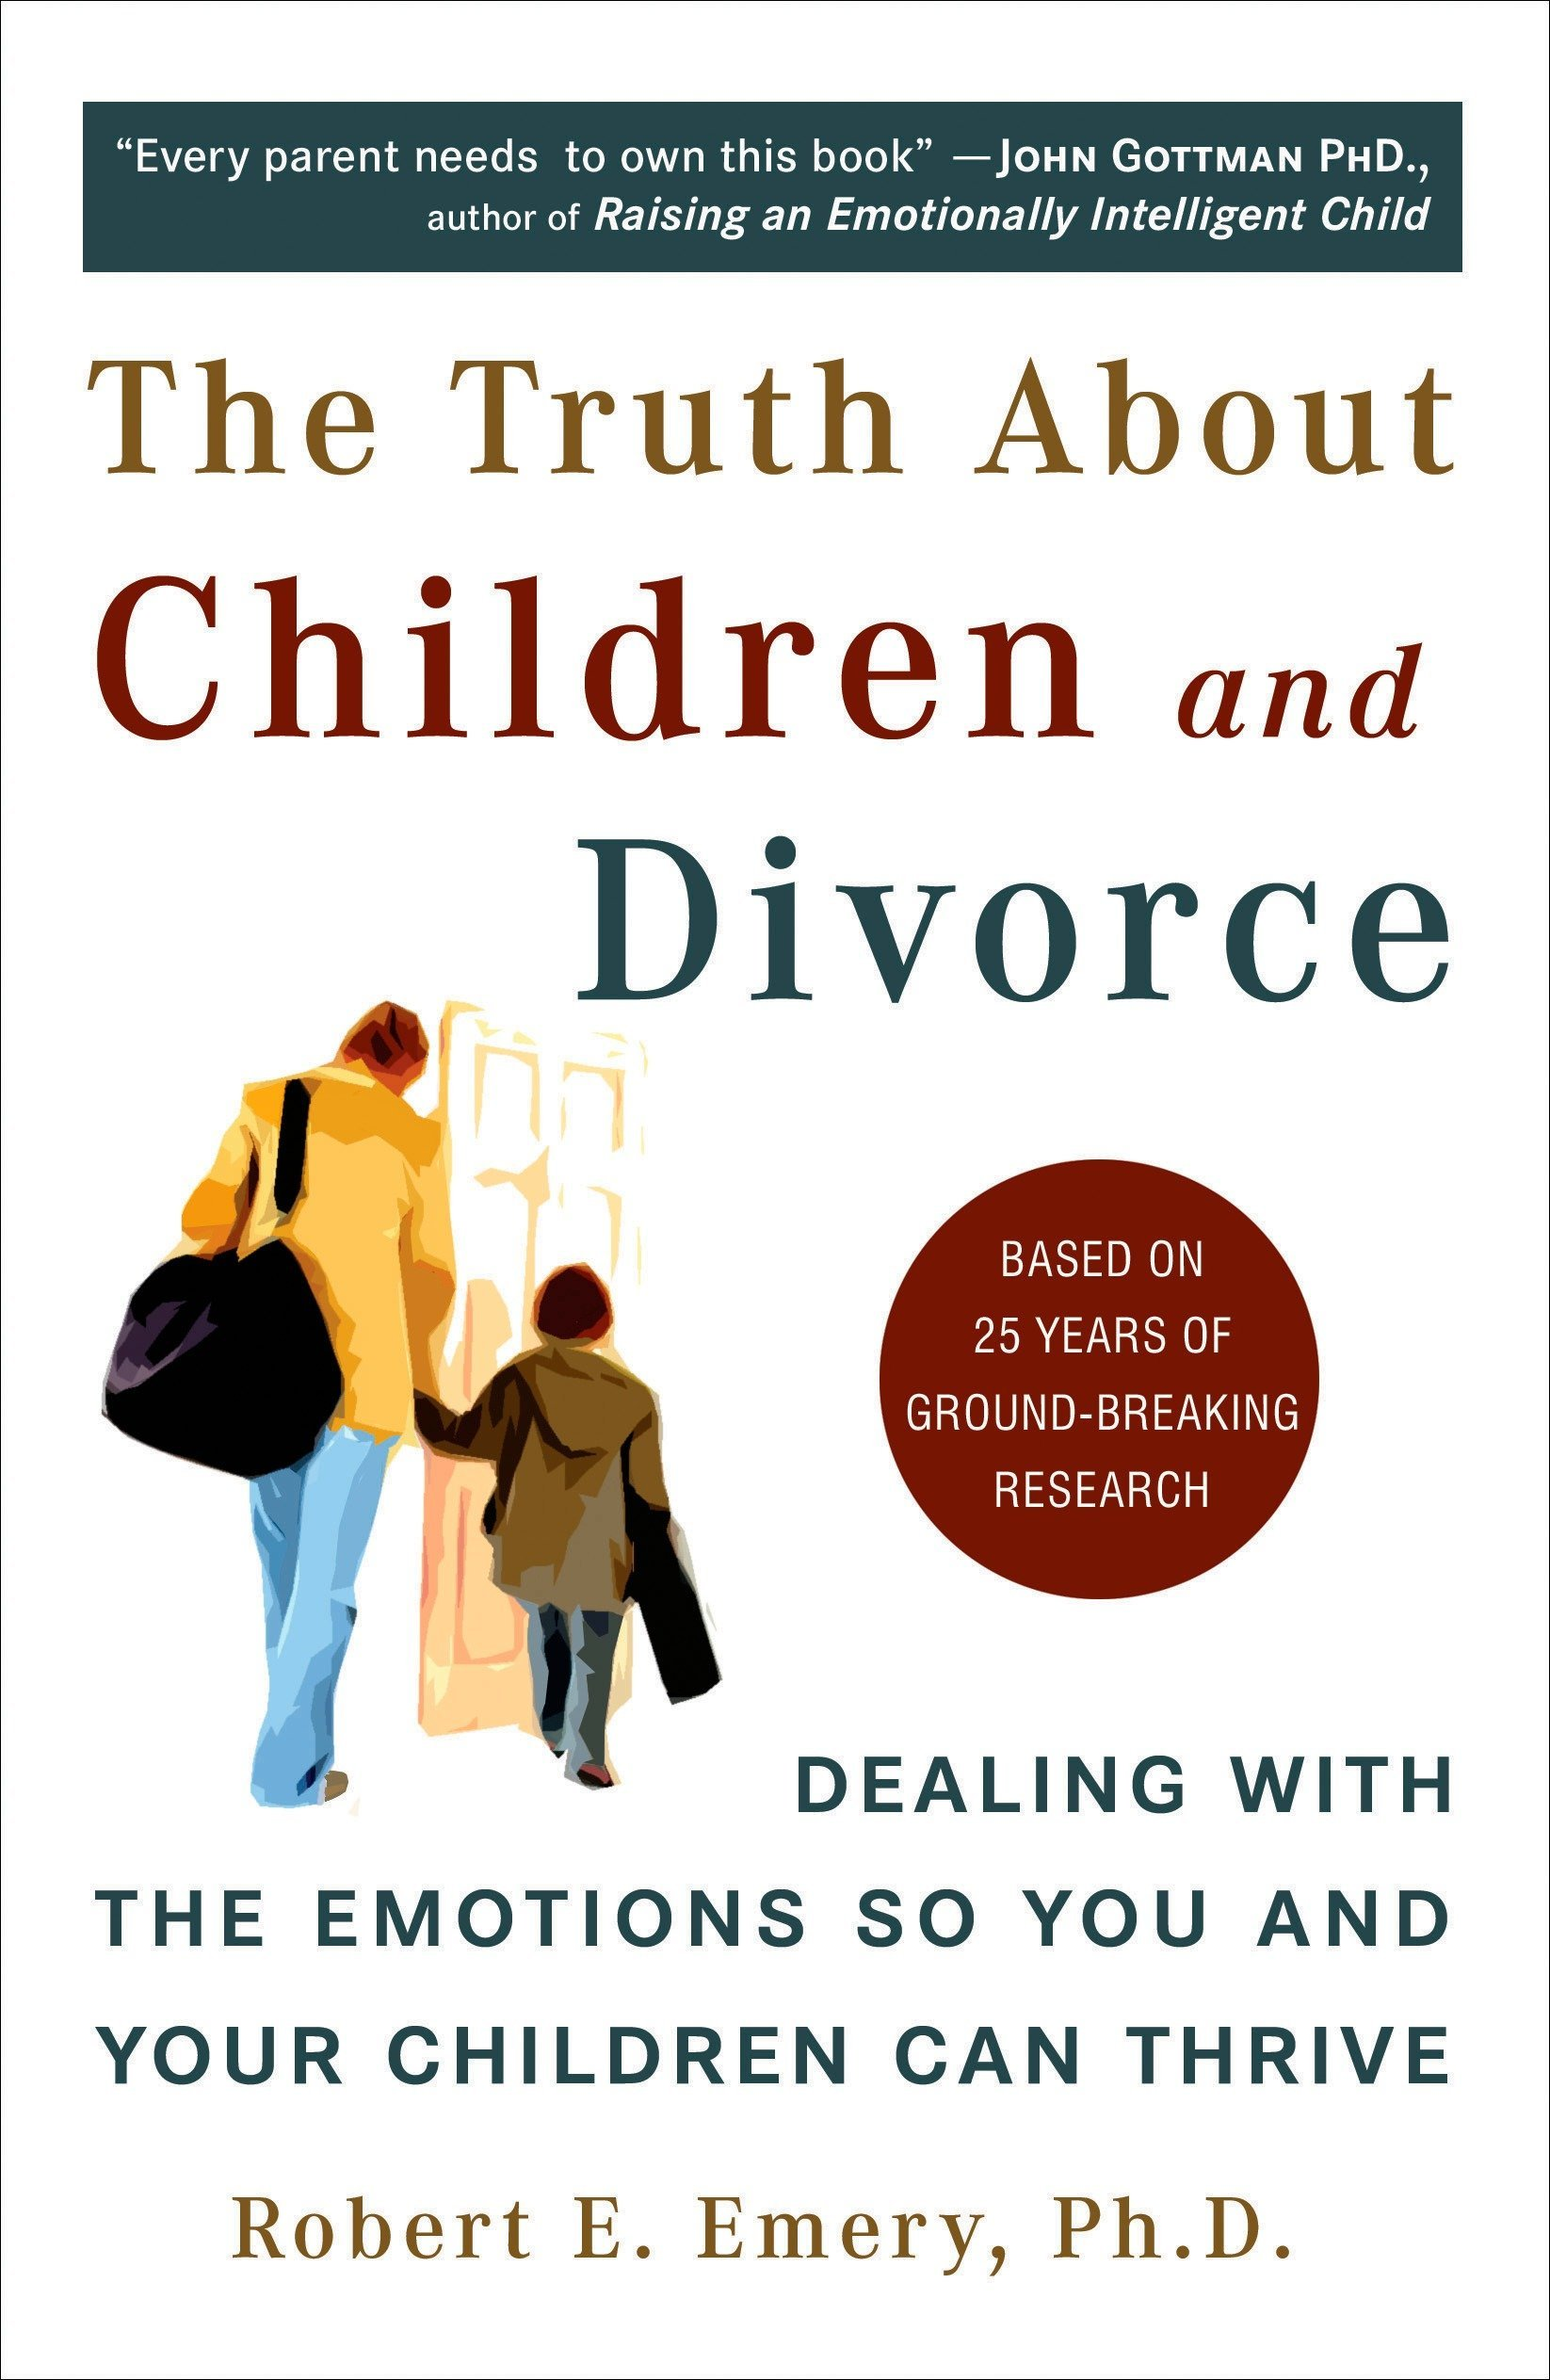 The Truth About Children and Divorce - Robert Emery